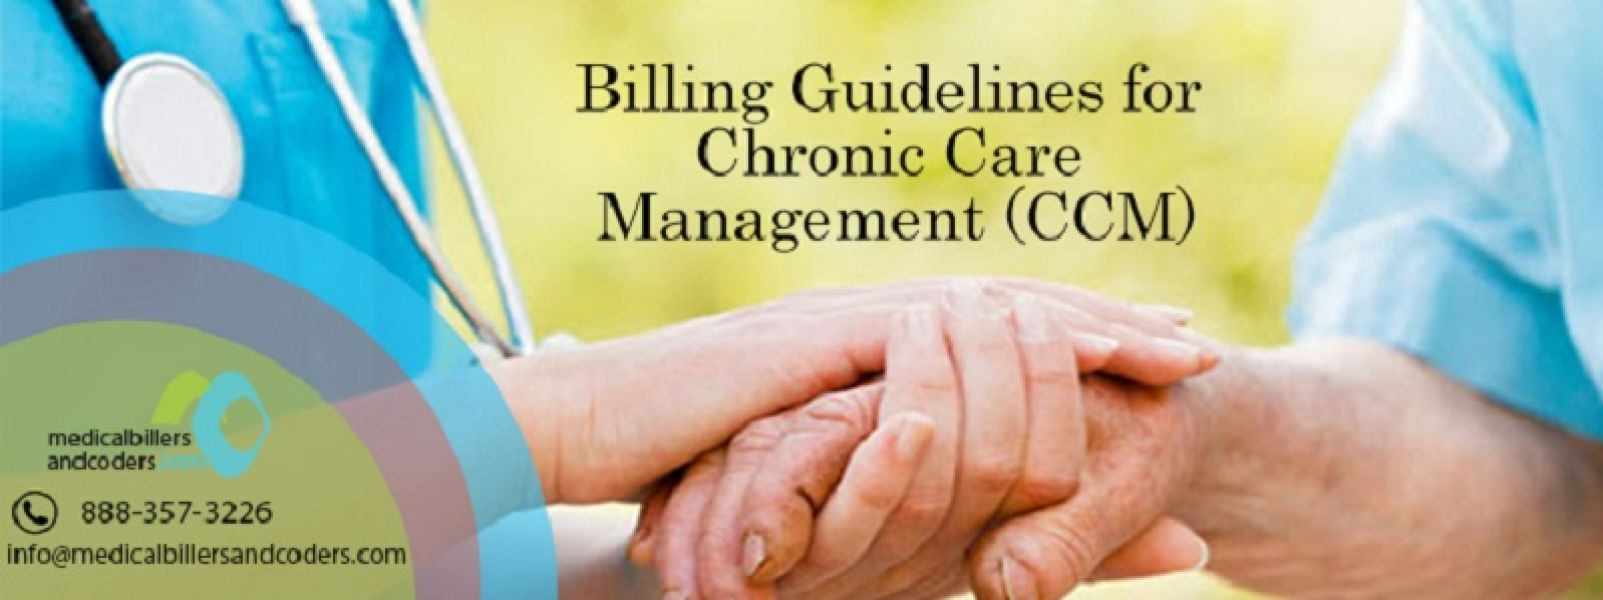 Billing Guidelines for Chronic Care Management (CCM)